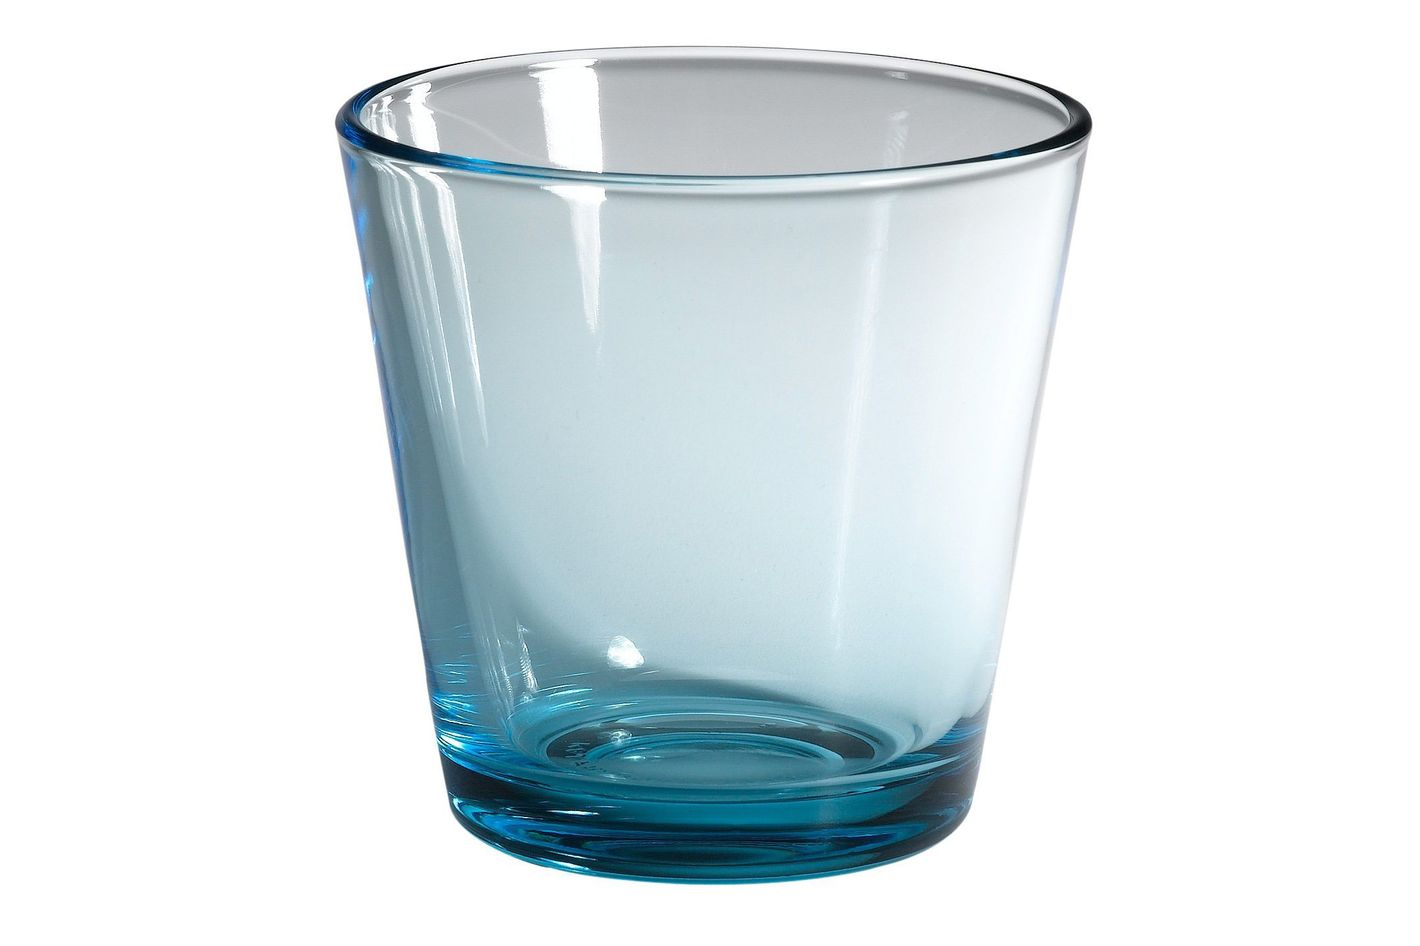 11 Best Drinking Glasses for Everyday Use